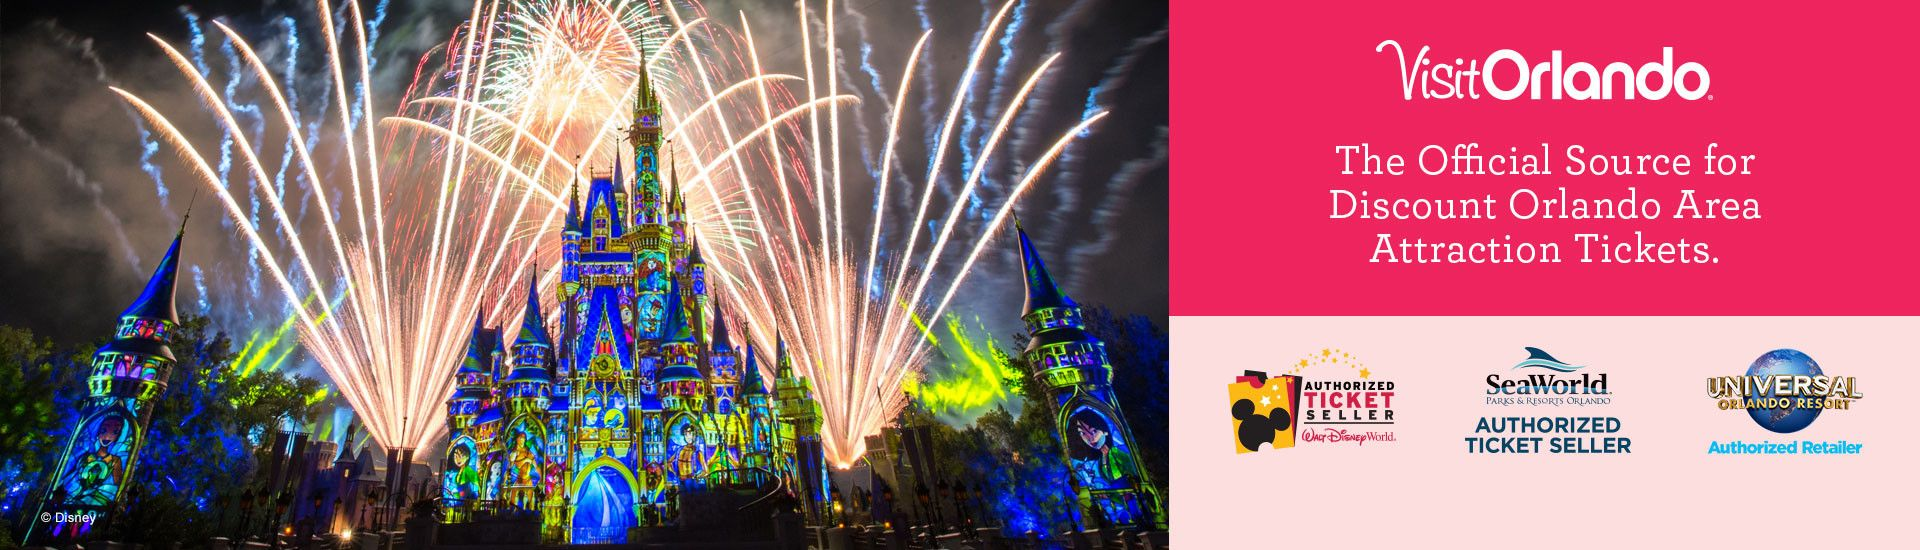 Order online now and save up to $40 off gate prices on Walt Disney World Resort theme park tickets.